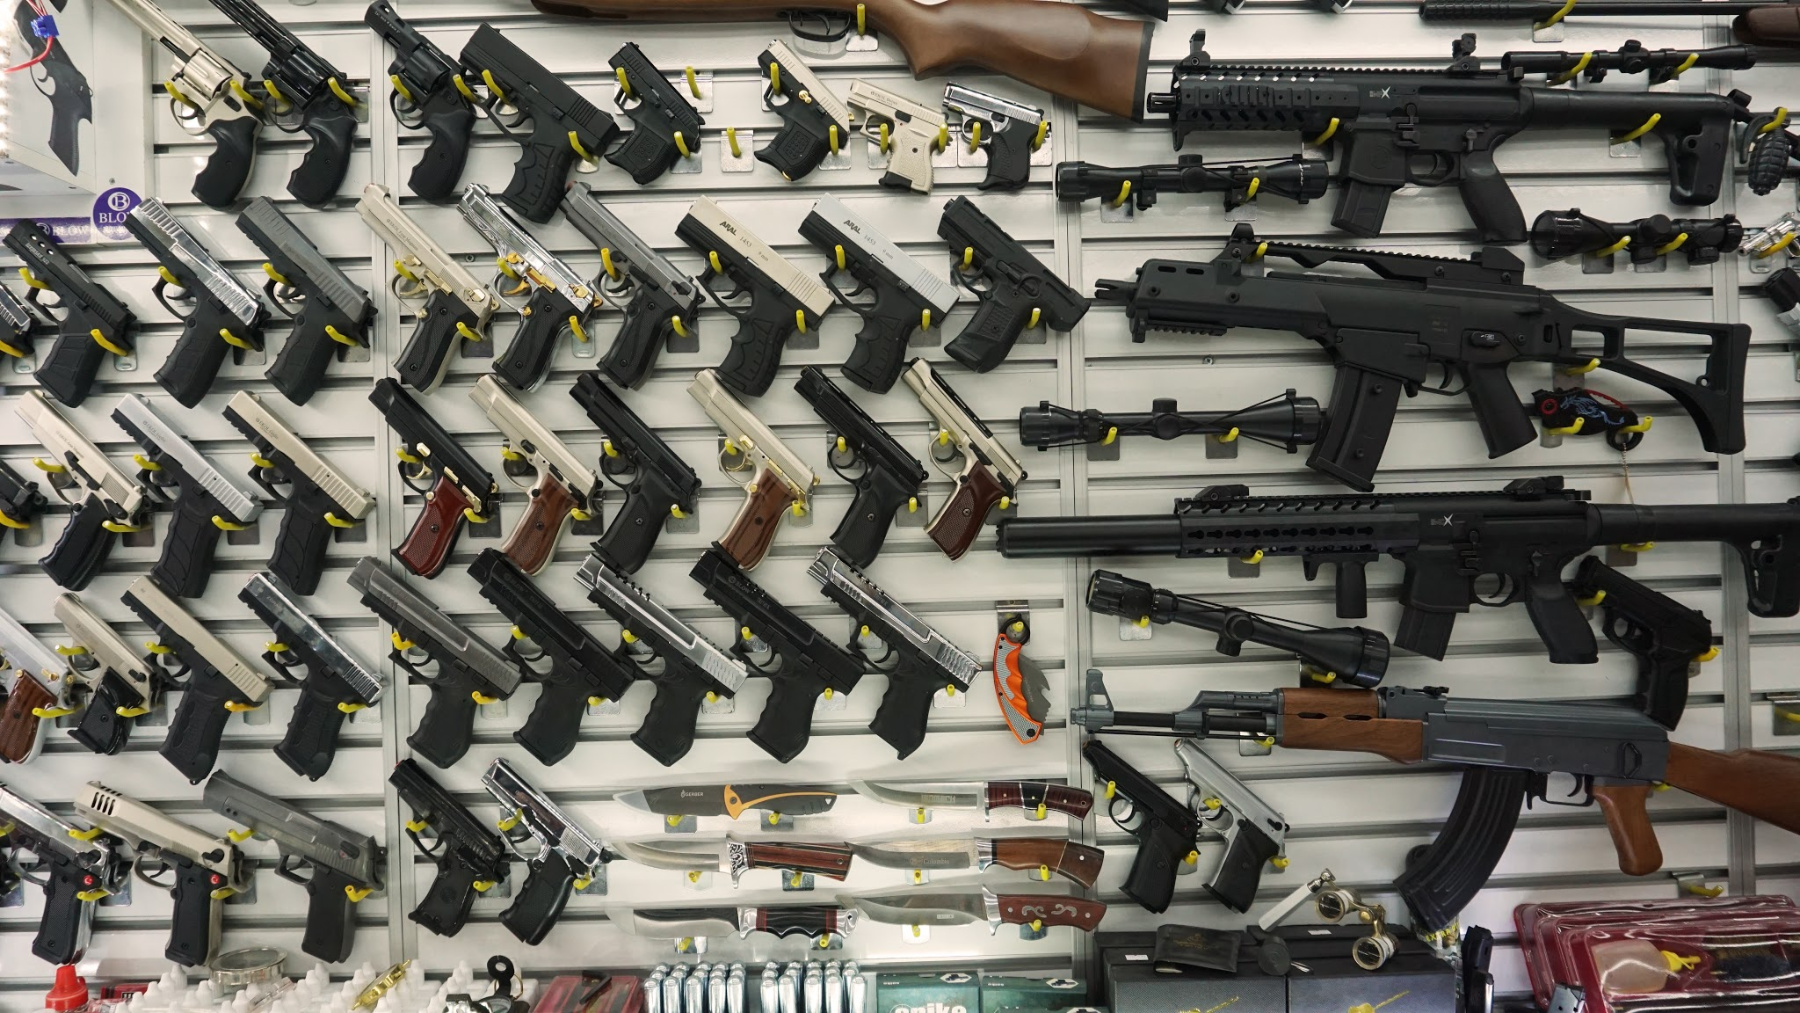 Are Gun Stores Essential Businesses? Take The Poll!